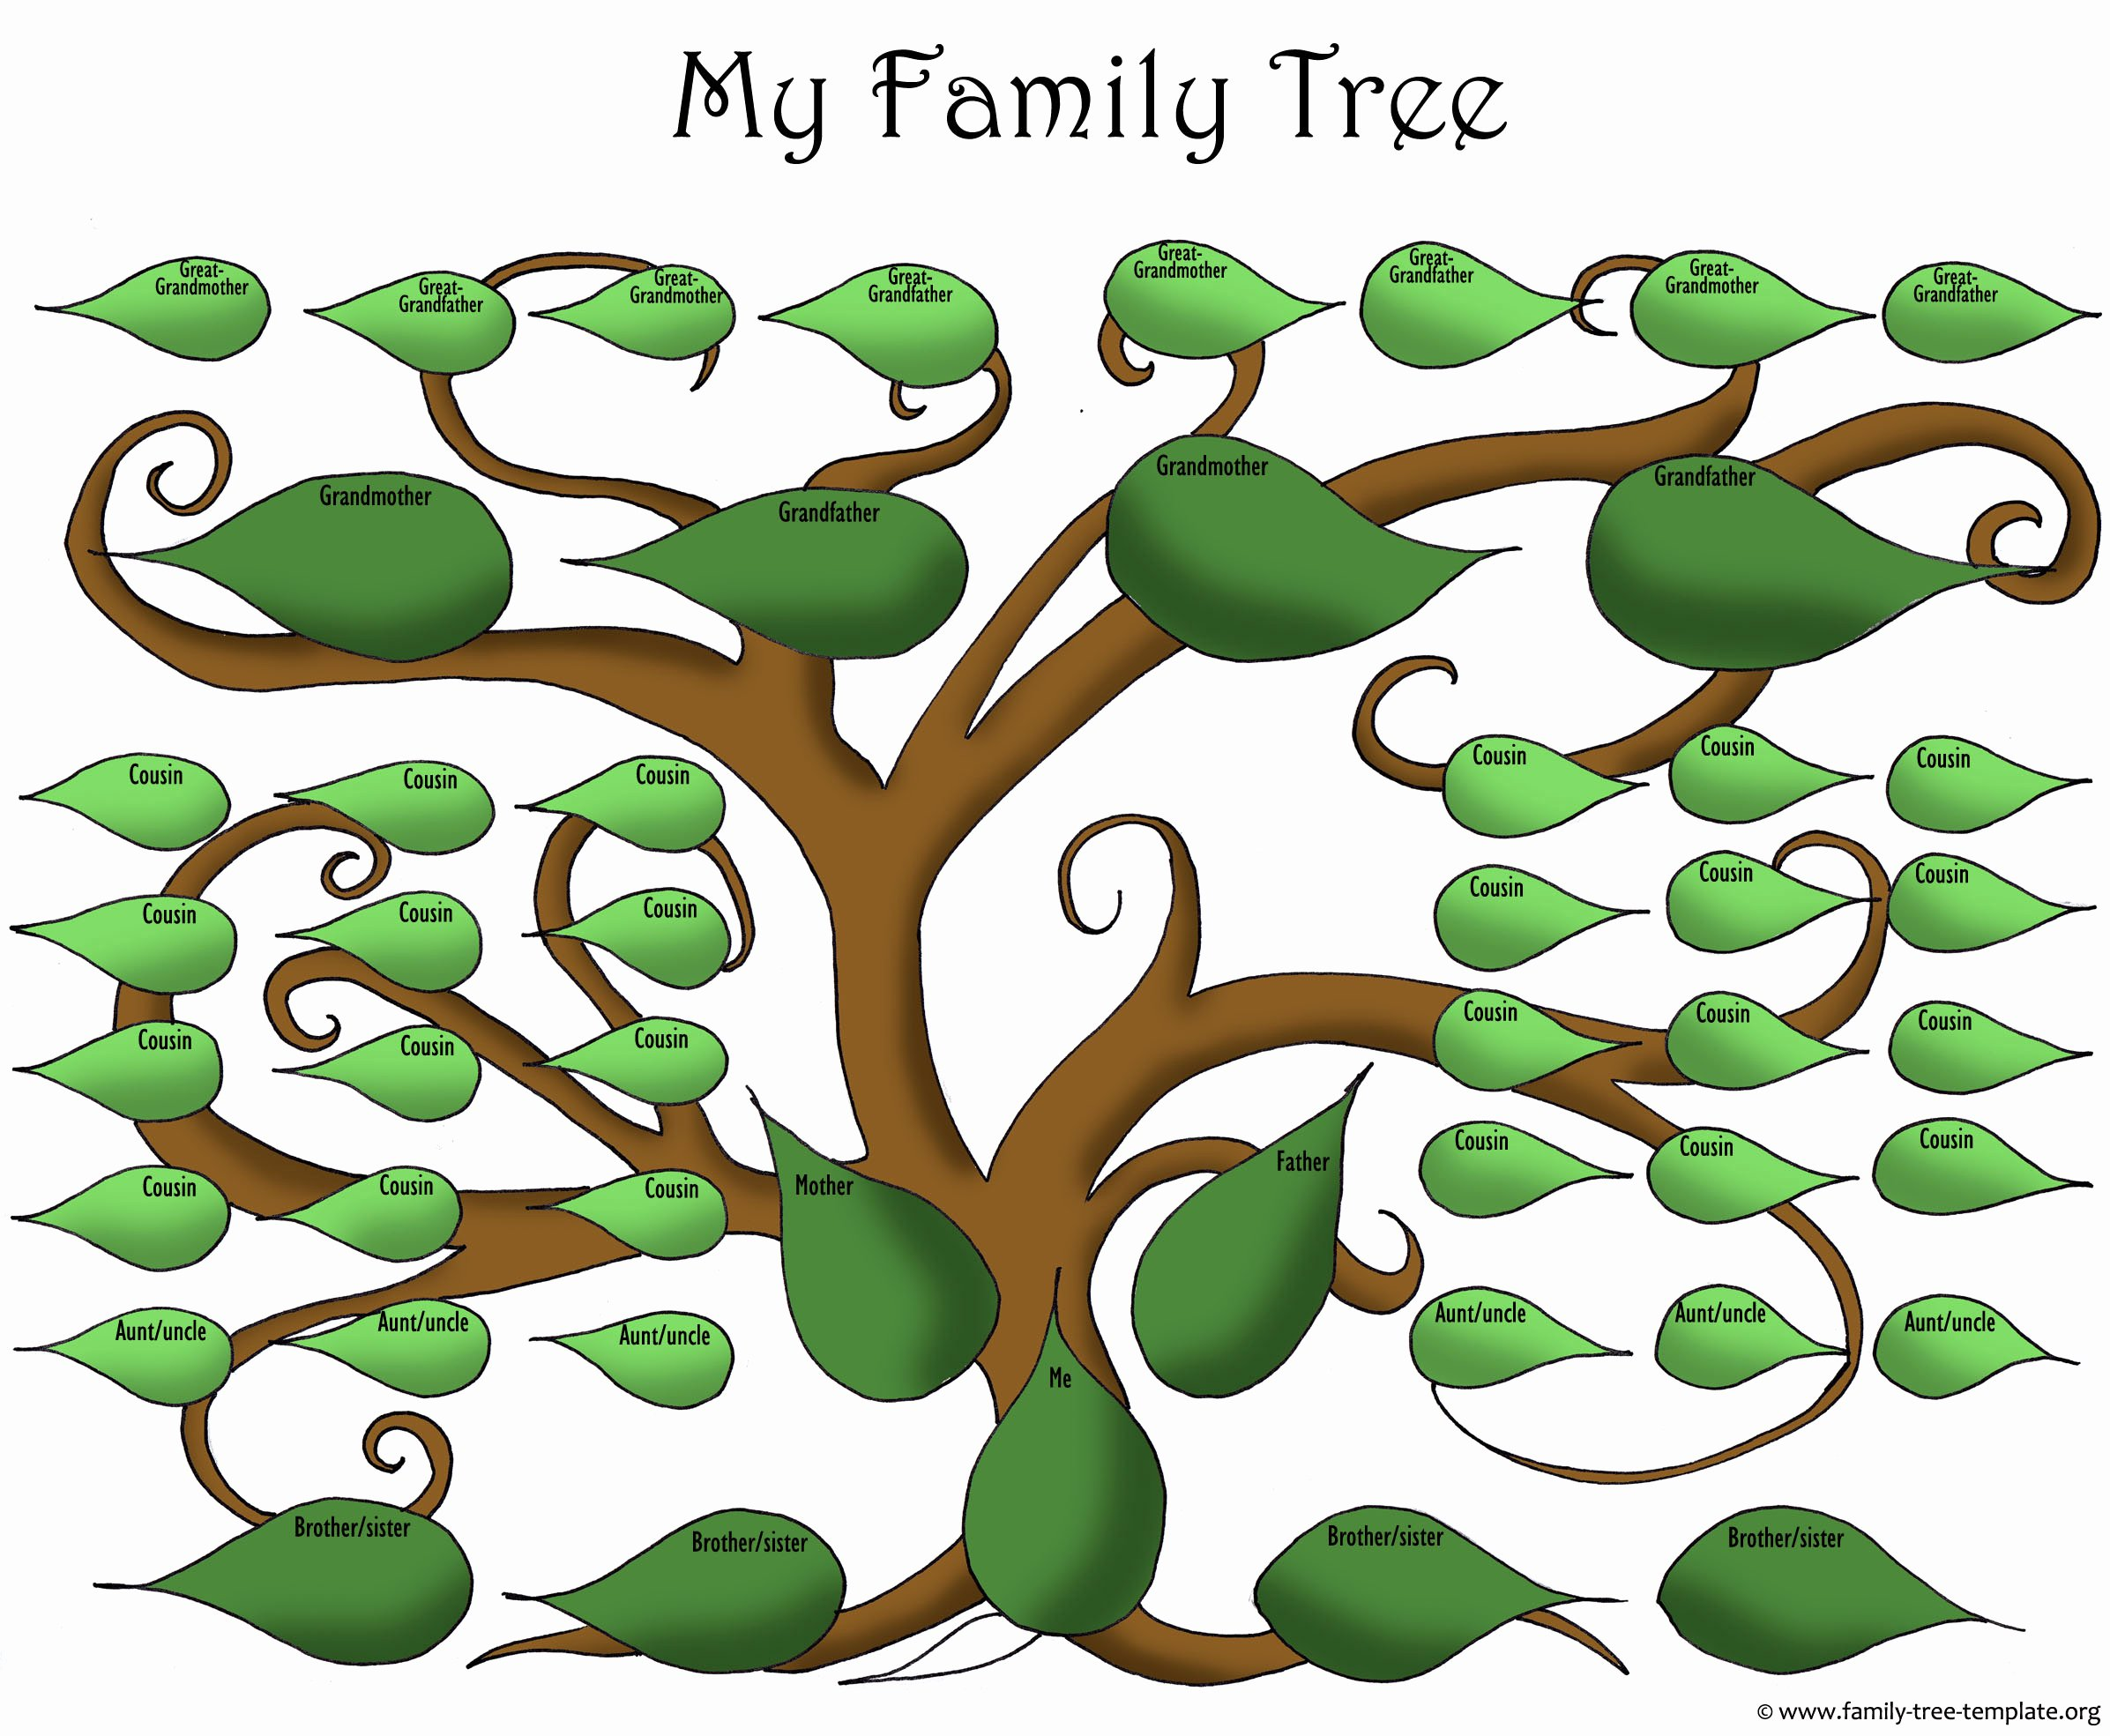 Family Tree with Pictures Template Elegant A Printable Blank Family Tree to Make Your Kids Genealogy